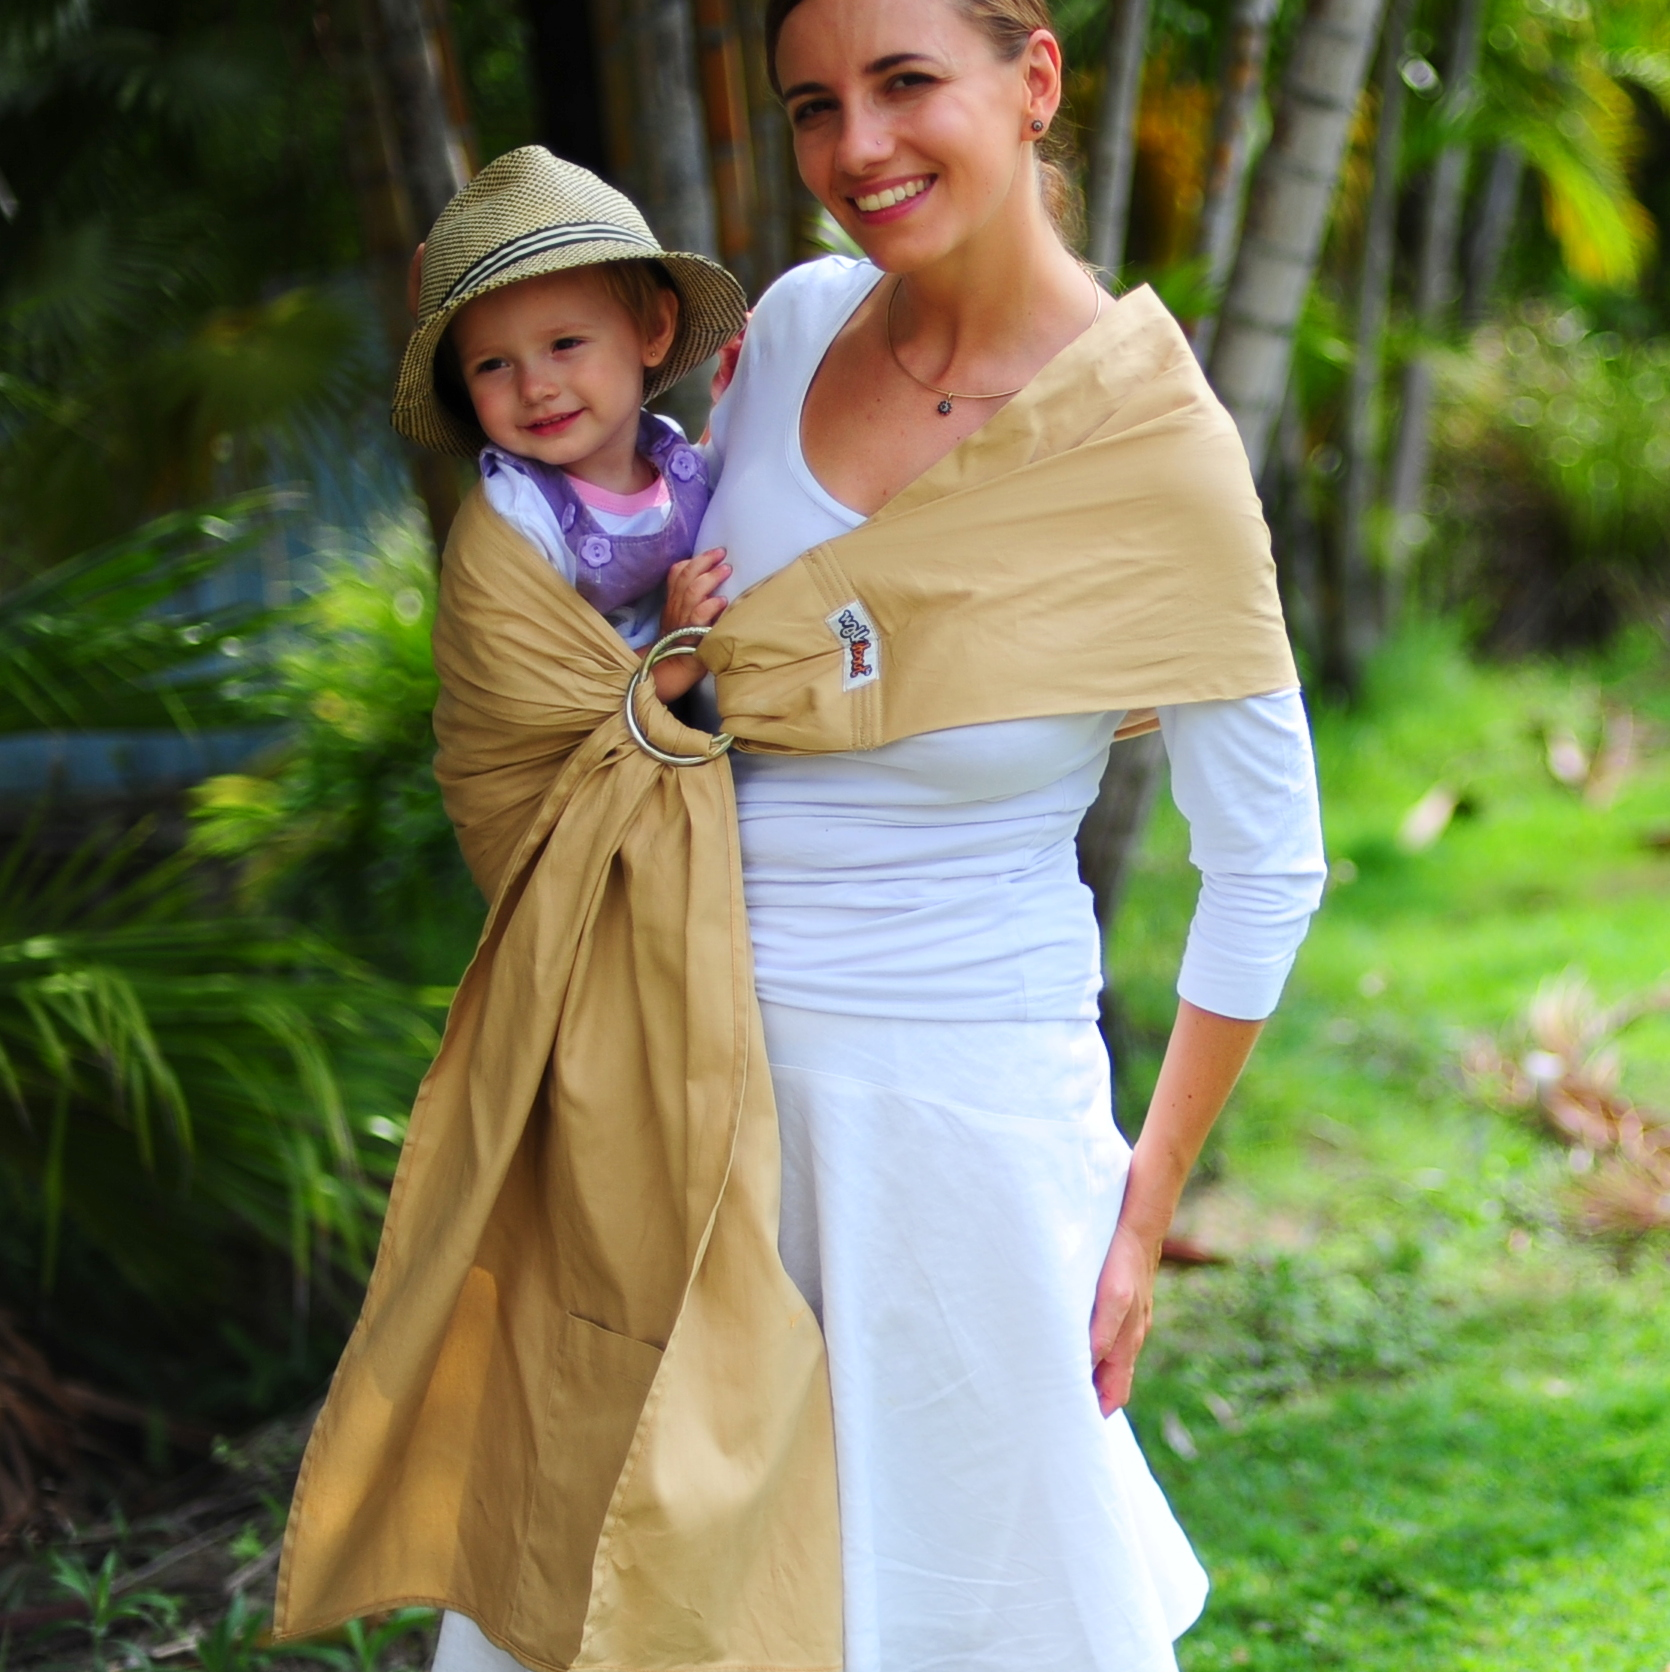 WALKABOUT Baby Child Sling Ring Carrier Wrap Pouch Latte Cotton AUSTRALIAN BRAND